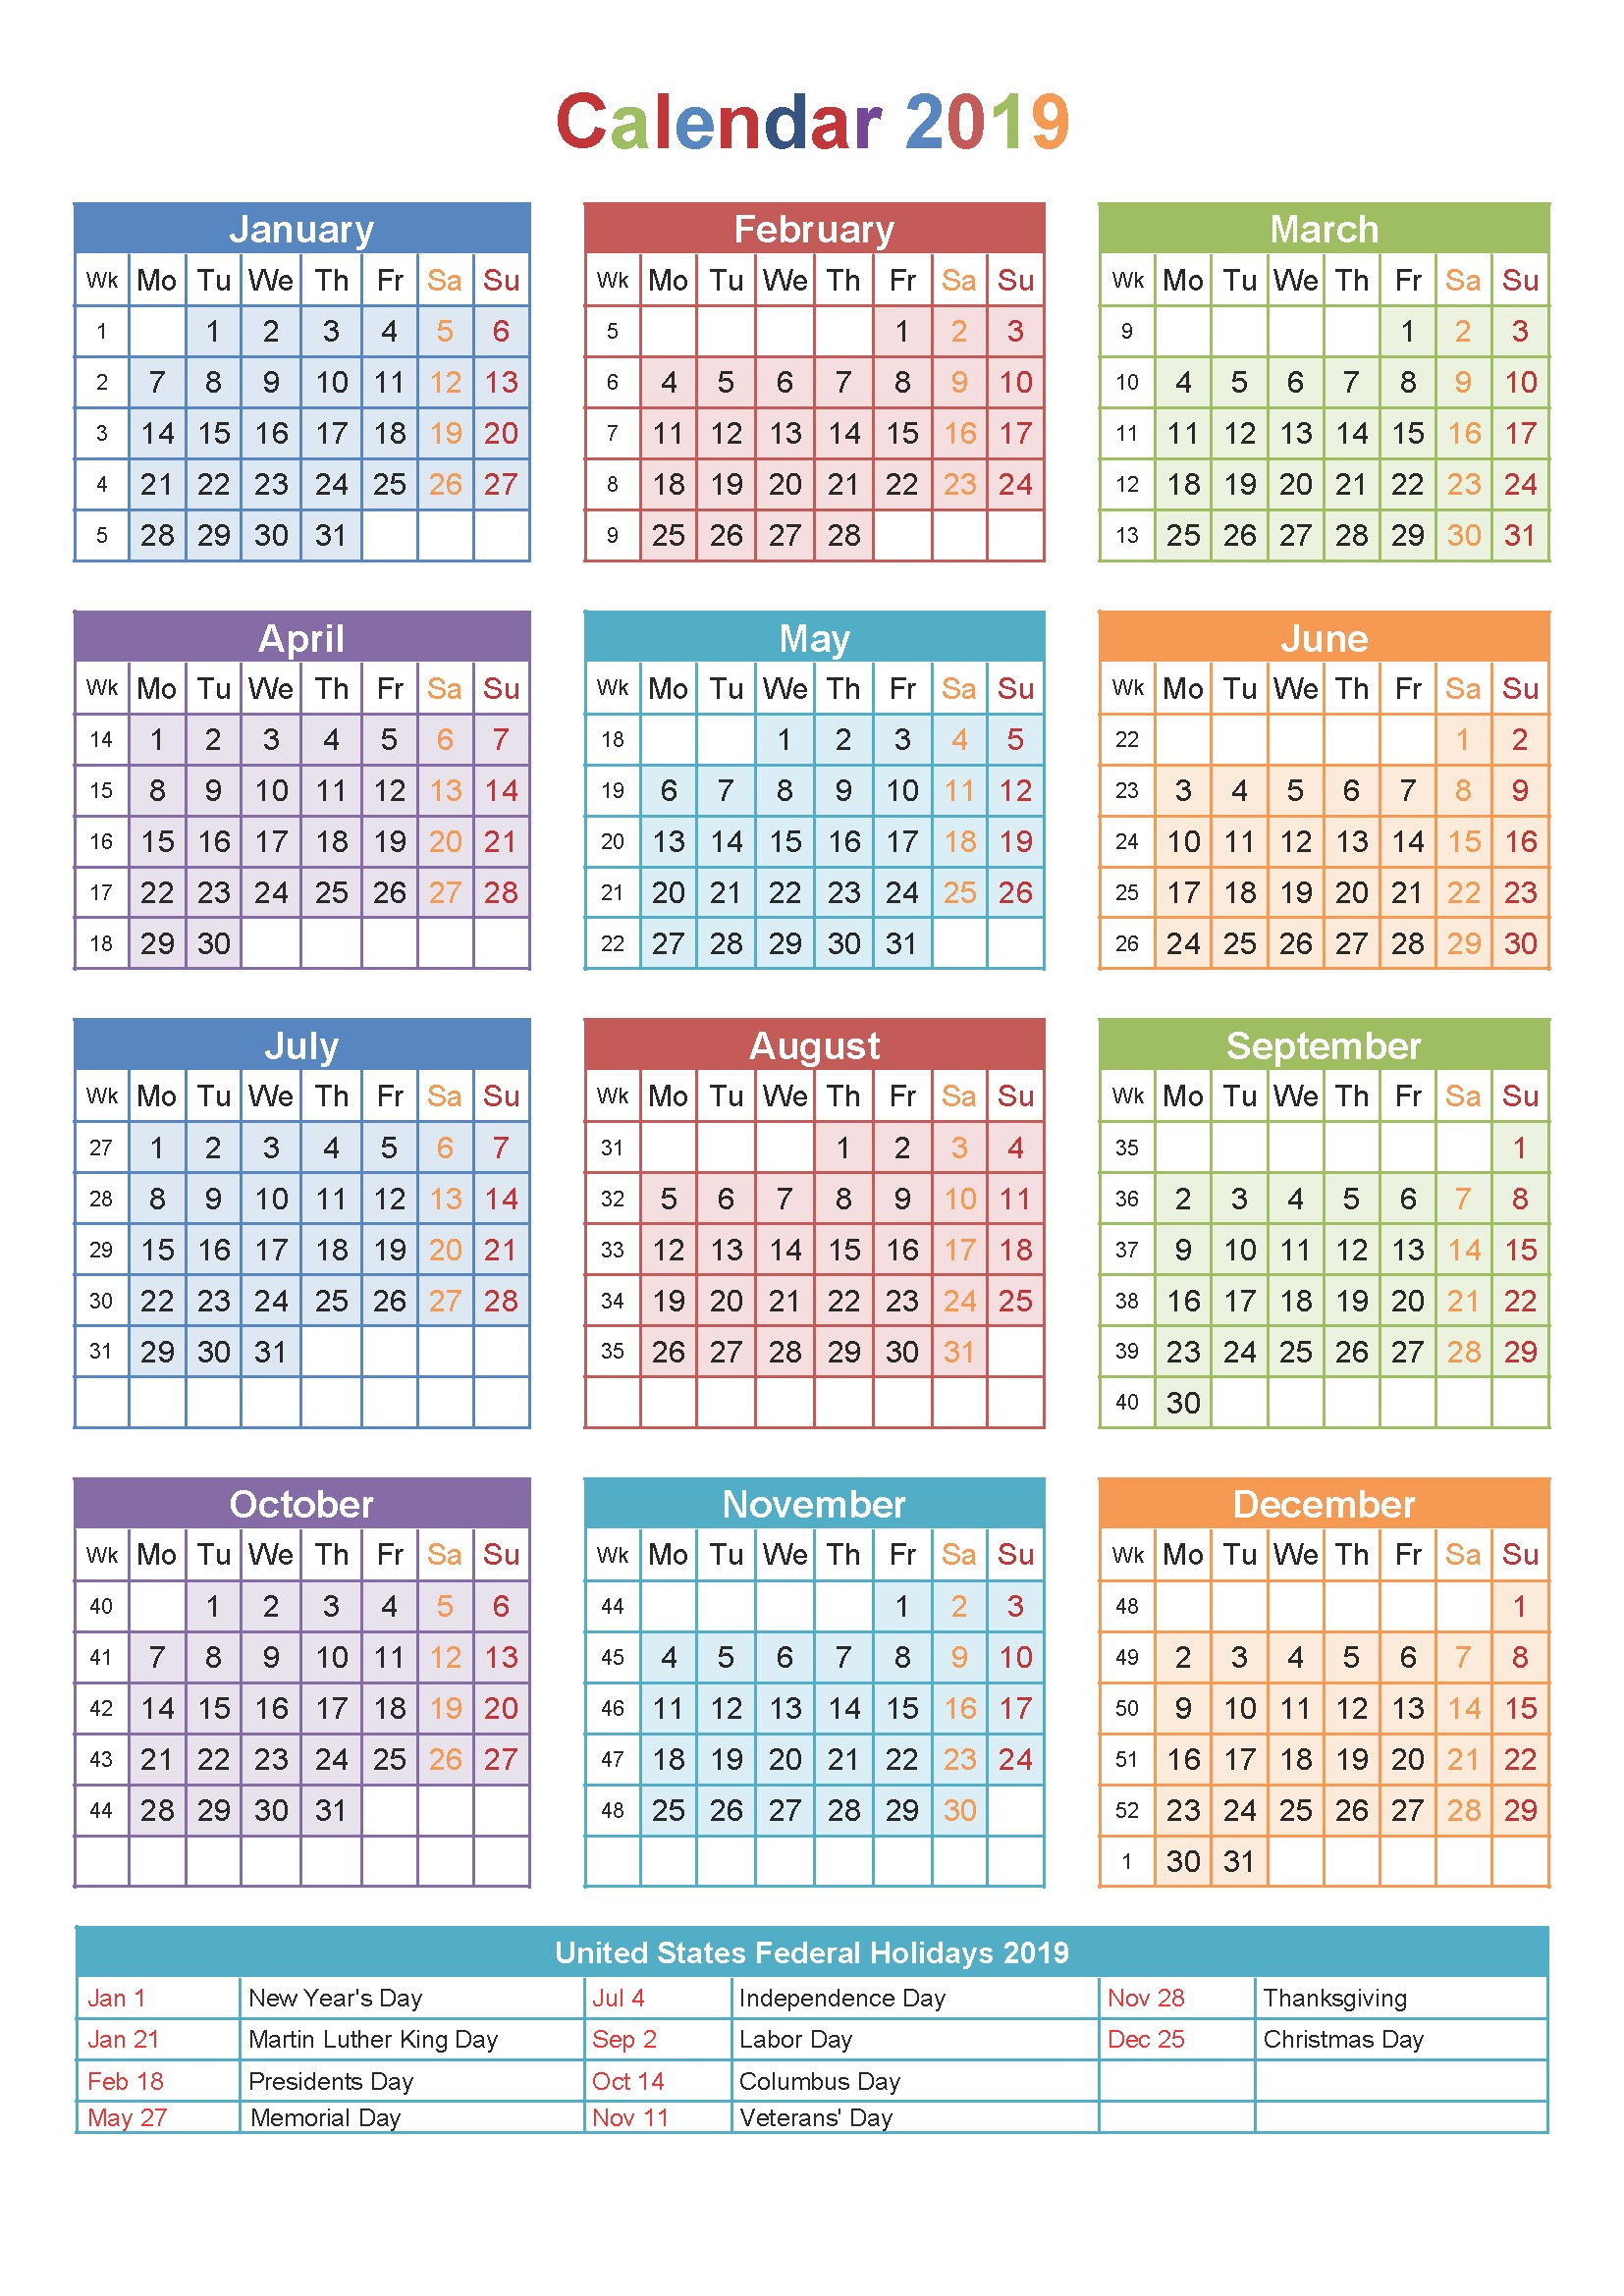 March 2019 Calendar Uk Printable Mejores Y Más Novedosos Coloring Pages Calendar with Federal Holidaysble Three Year Excel Of March 2019 Calendar Uk Printable Más Recientes March 2019 Desktop Background Calendar